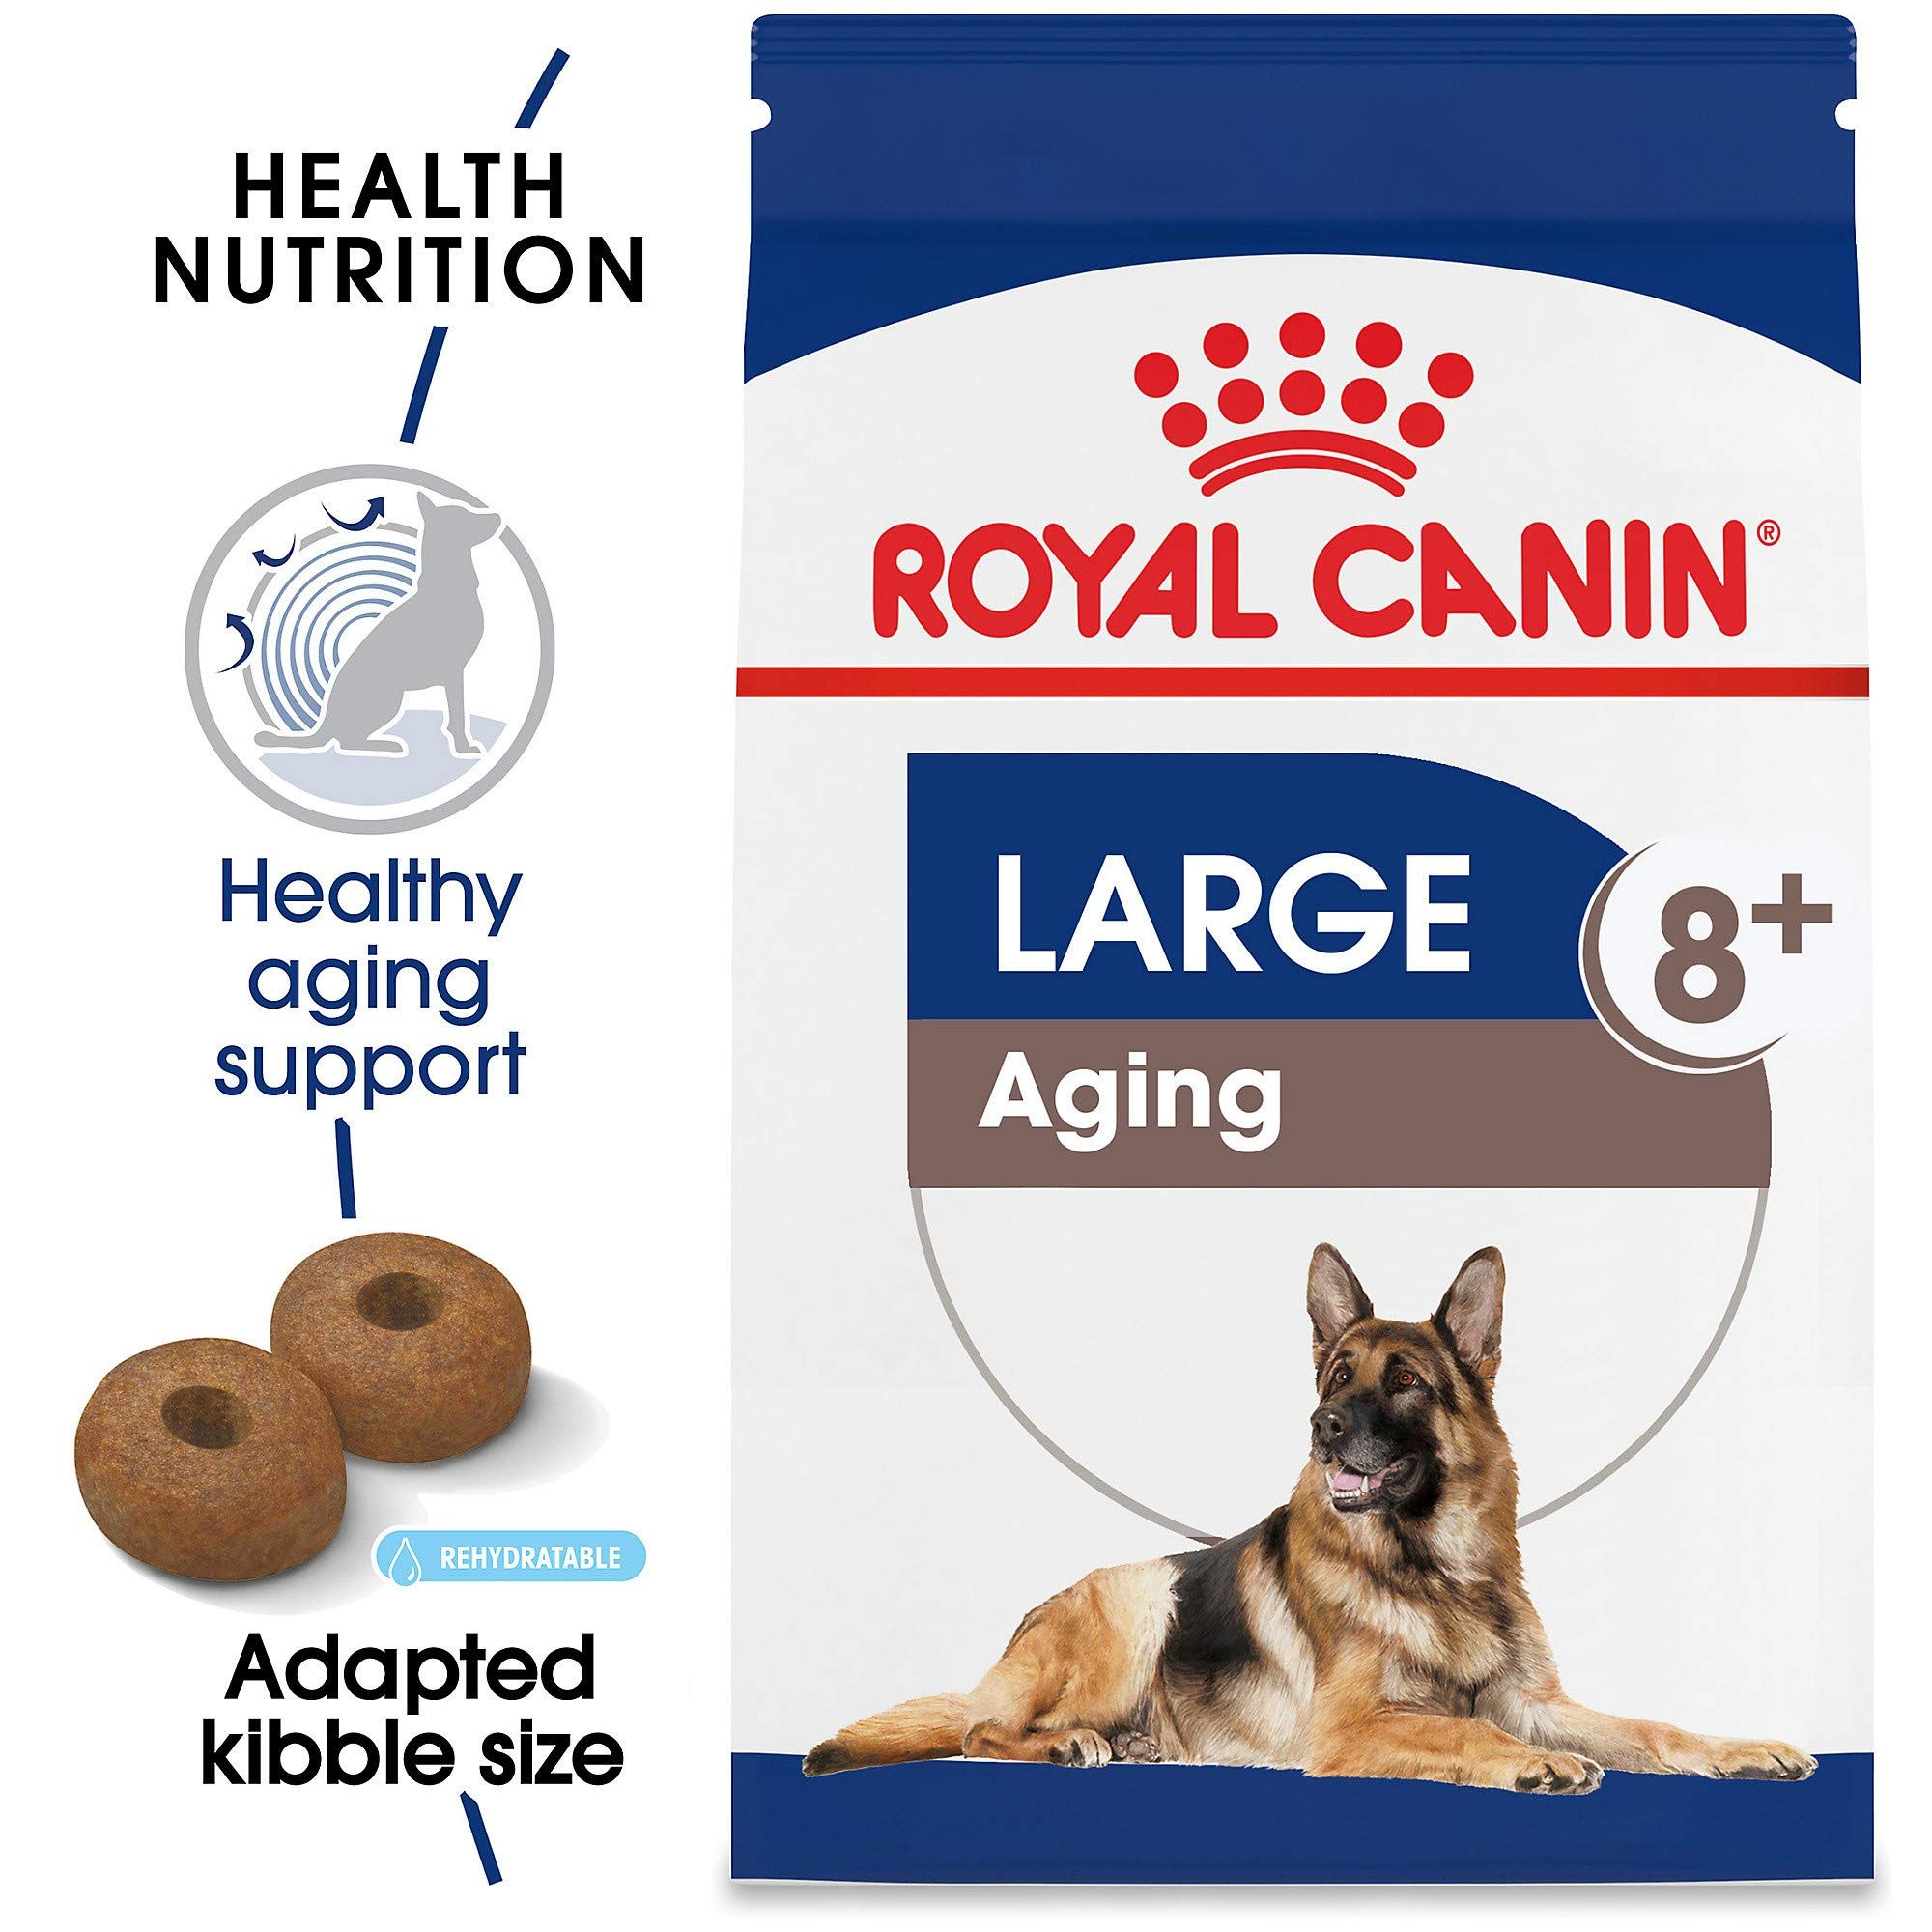 Royal Canin Size Health Nutrition Large Aging Dry Dog Food Dry